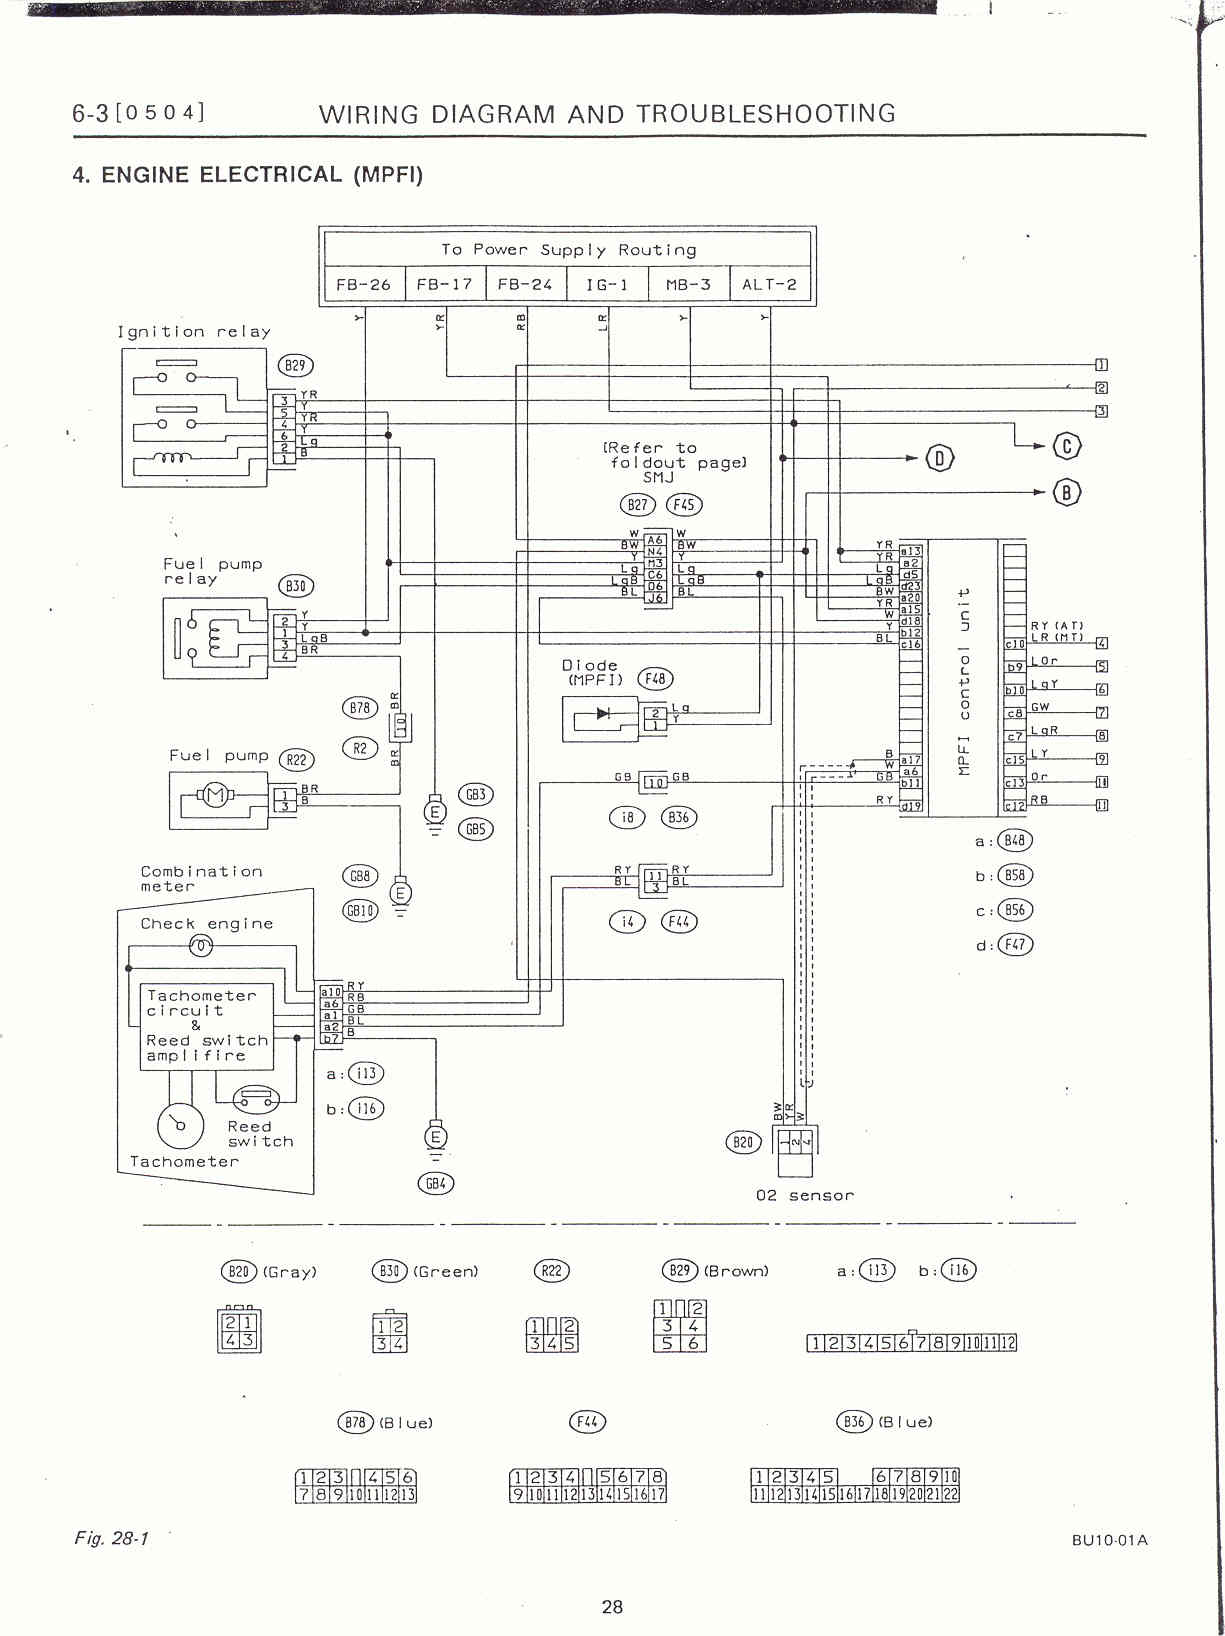 surrealmirage subaru legacy swap electrical info notes rh surrealmirage com Subaru Legacy Transmission Wiring-Diagram Subaru Legacy Wiring-Diagram AC Coolin Fan